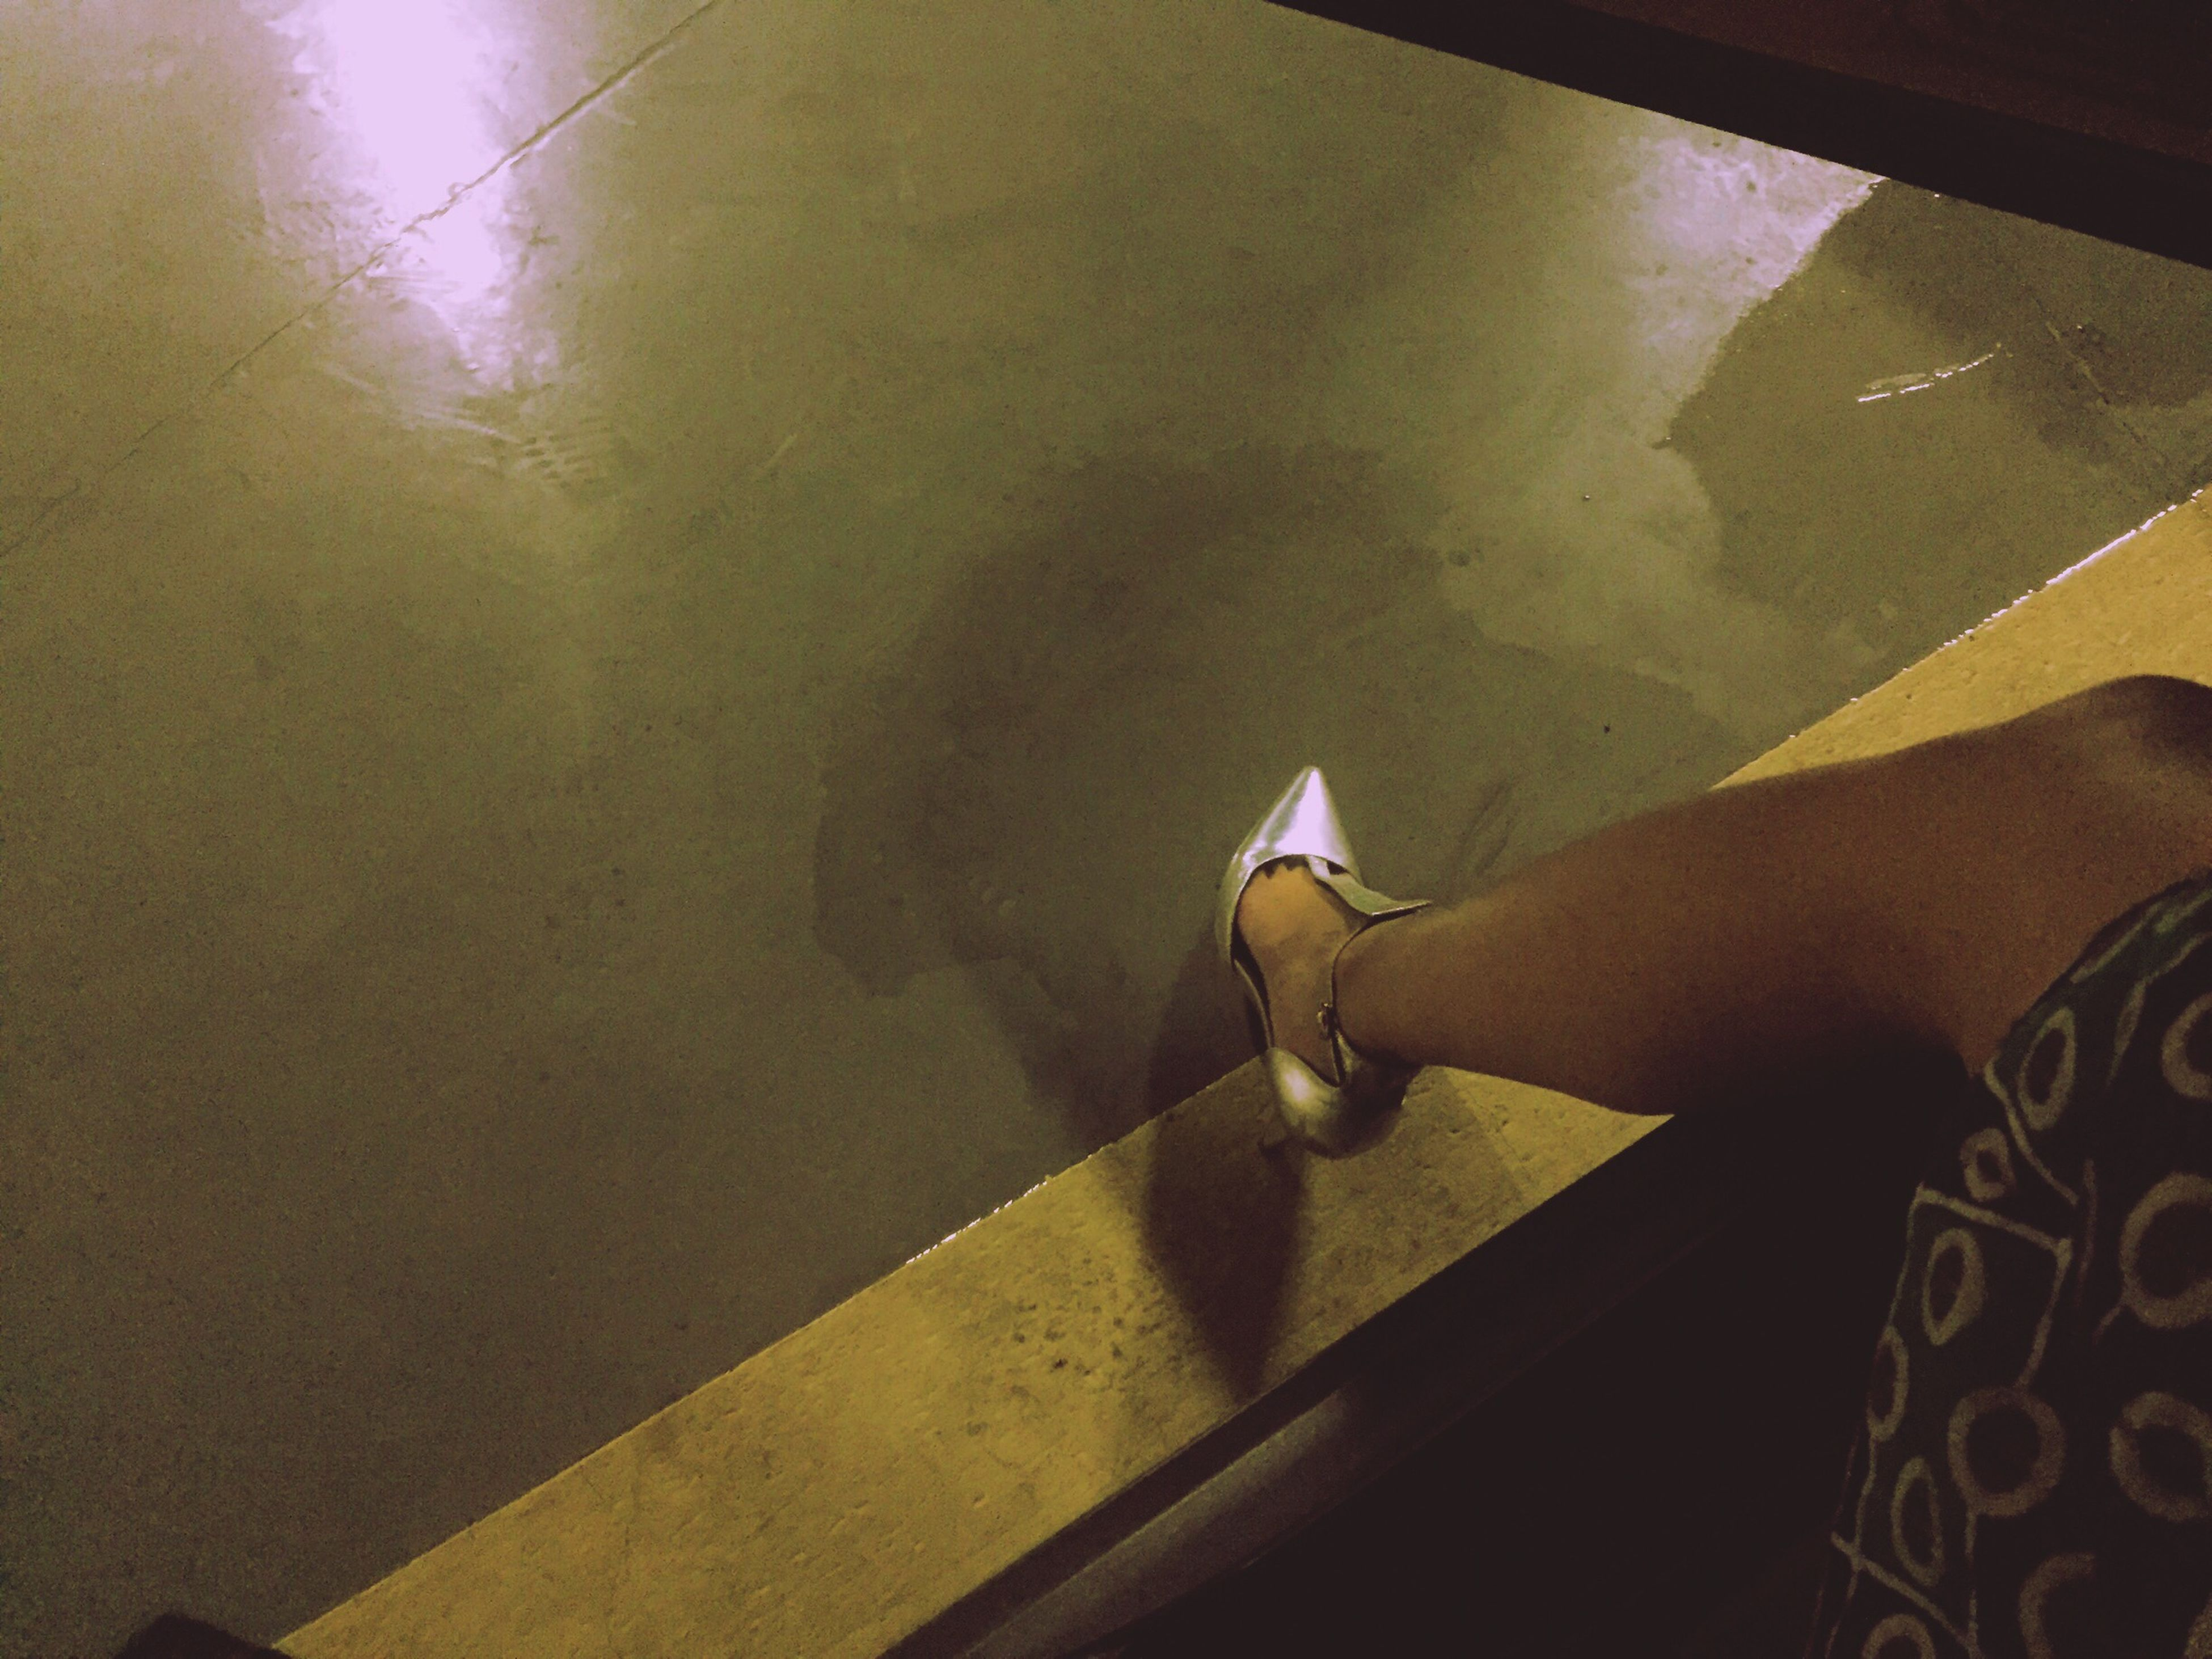 lifestyles, indoors, leisure activity, men, person, part of, reflection, high angle view, unrecognizable person, holding, water, low section, cropped, personal perspective, glass - material, full length